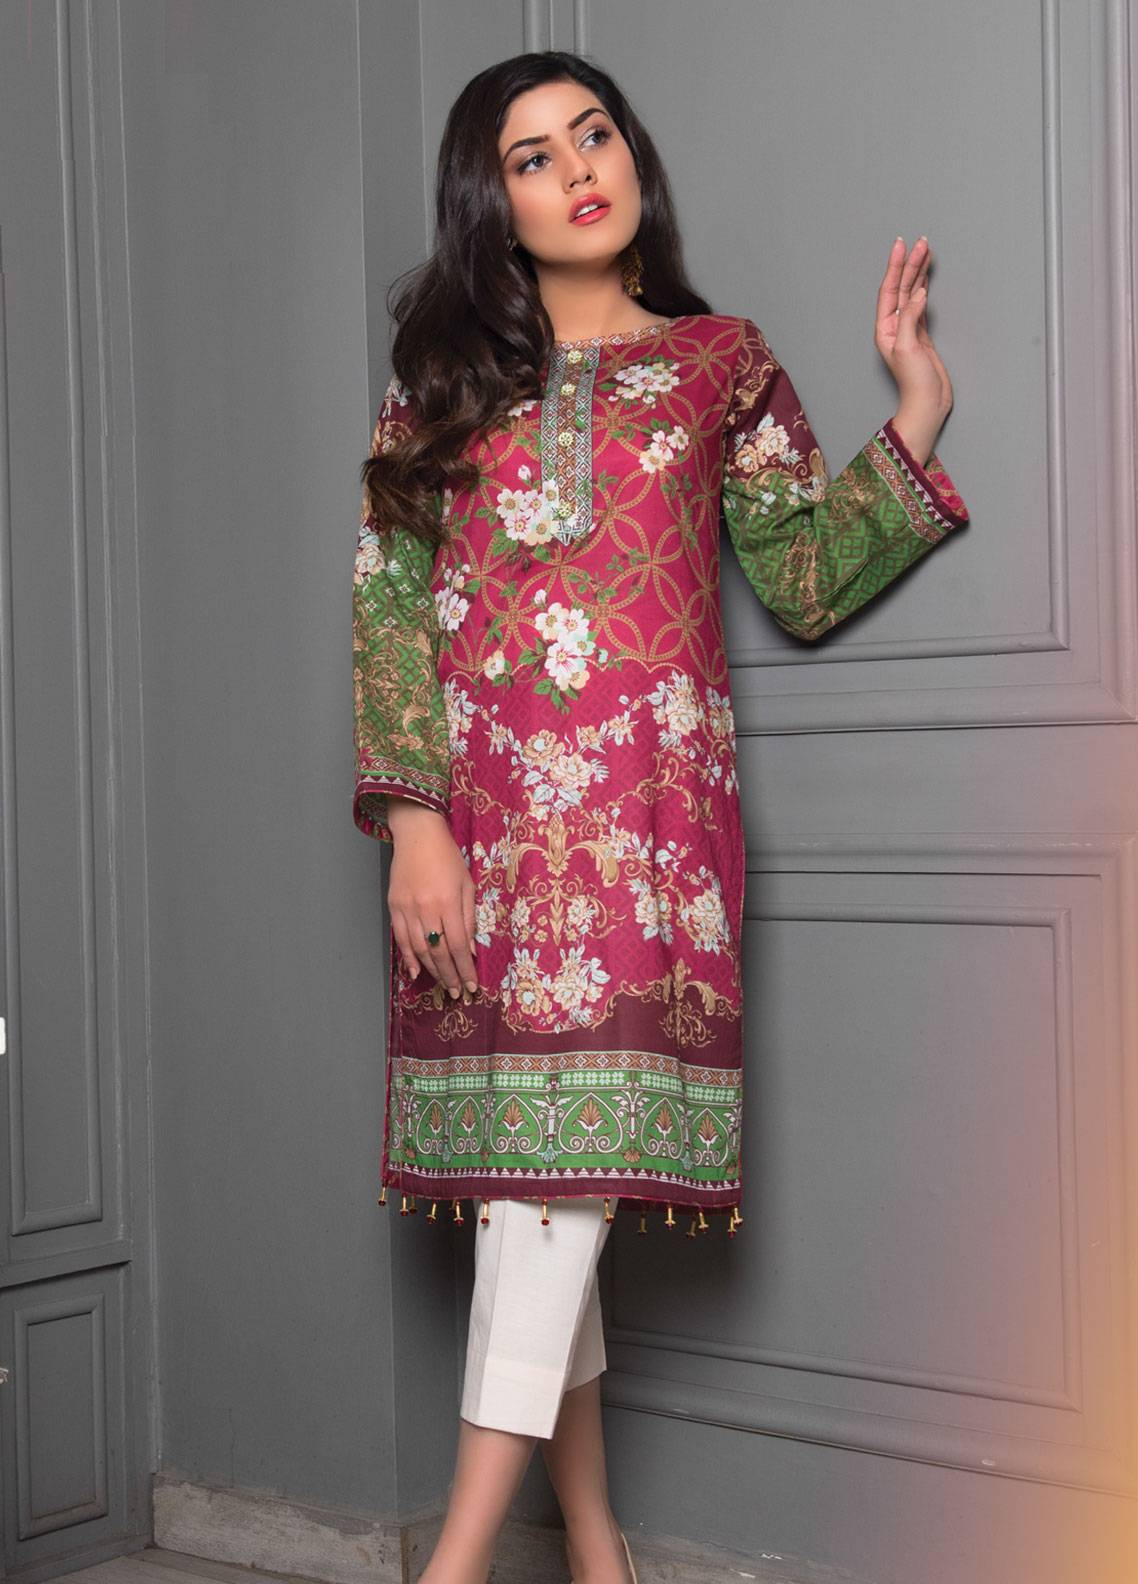 59f4f0d55c Sanoor by Noor Fatima Printed Lawn Unstitched Kurties SNO19K 853 - Spring /  Summer Collection. Online only